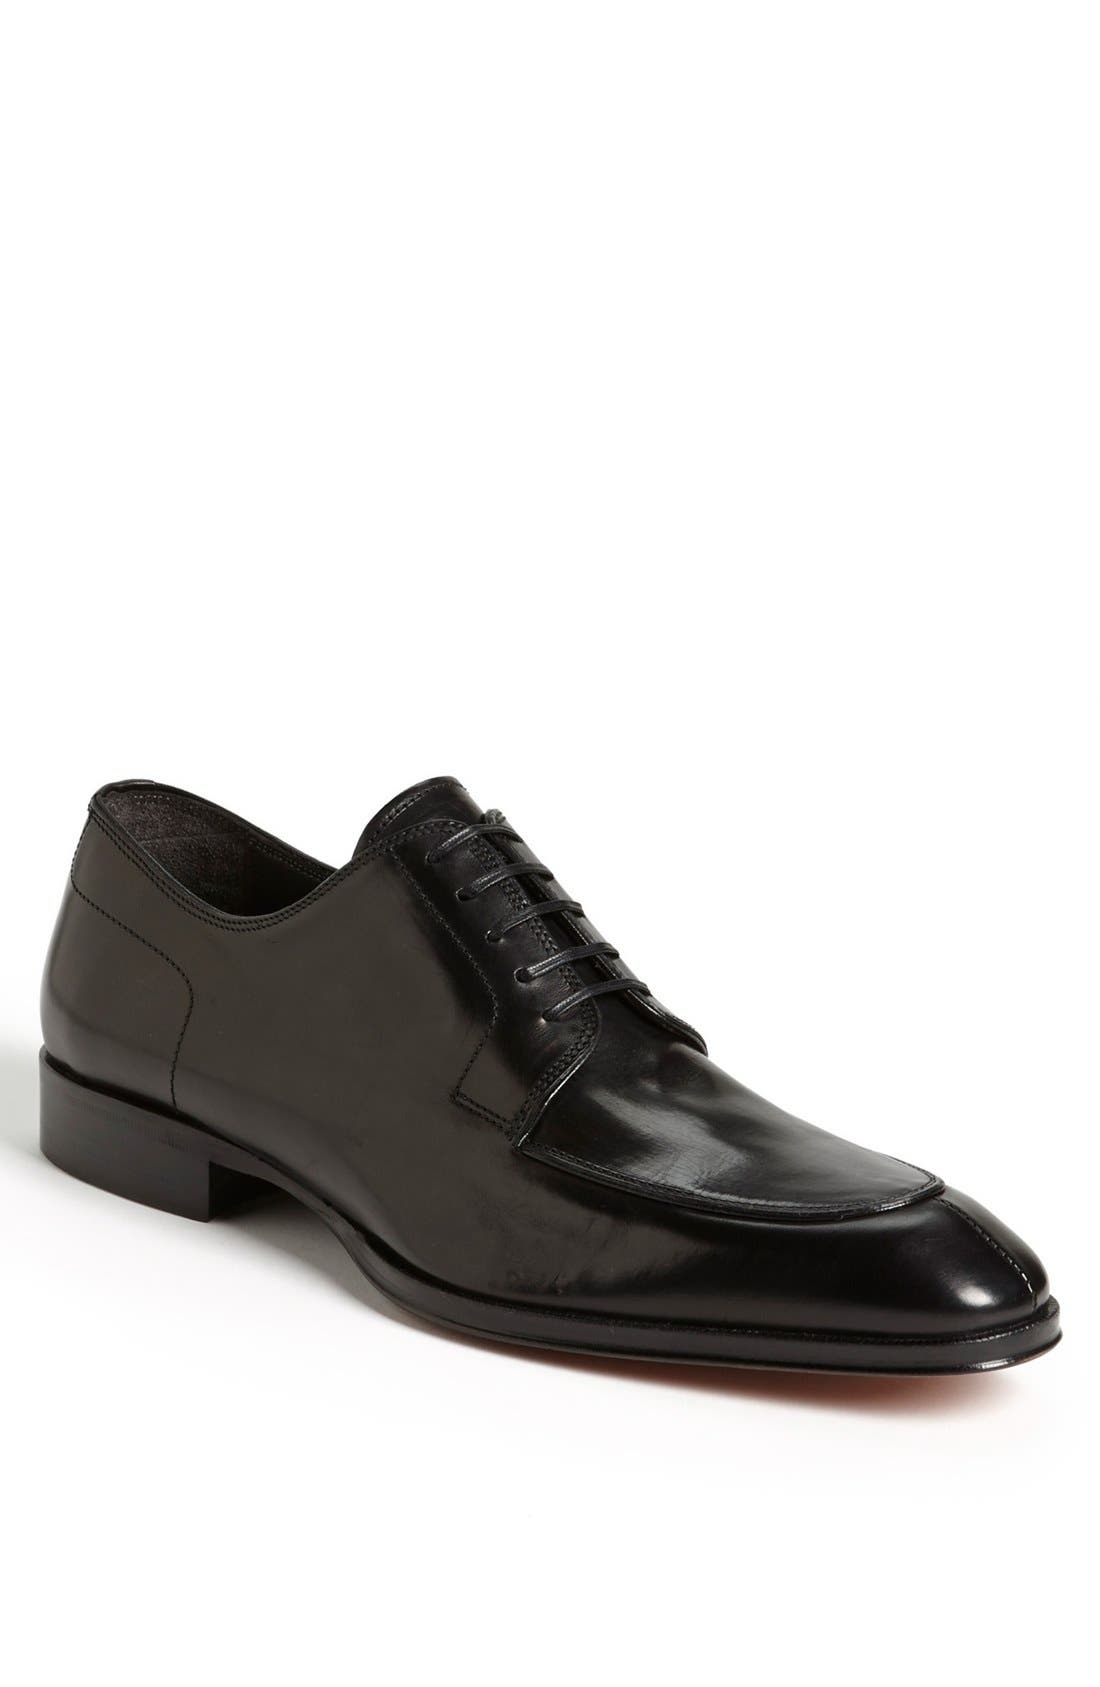 Main Image - To Boot New York 'Orson' Split Toe Derby